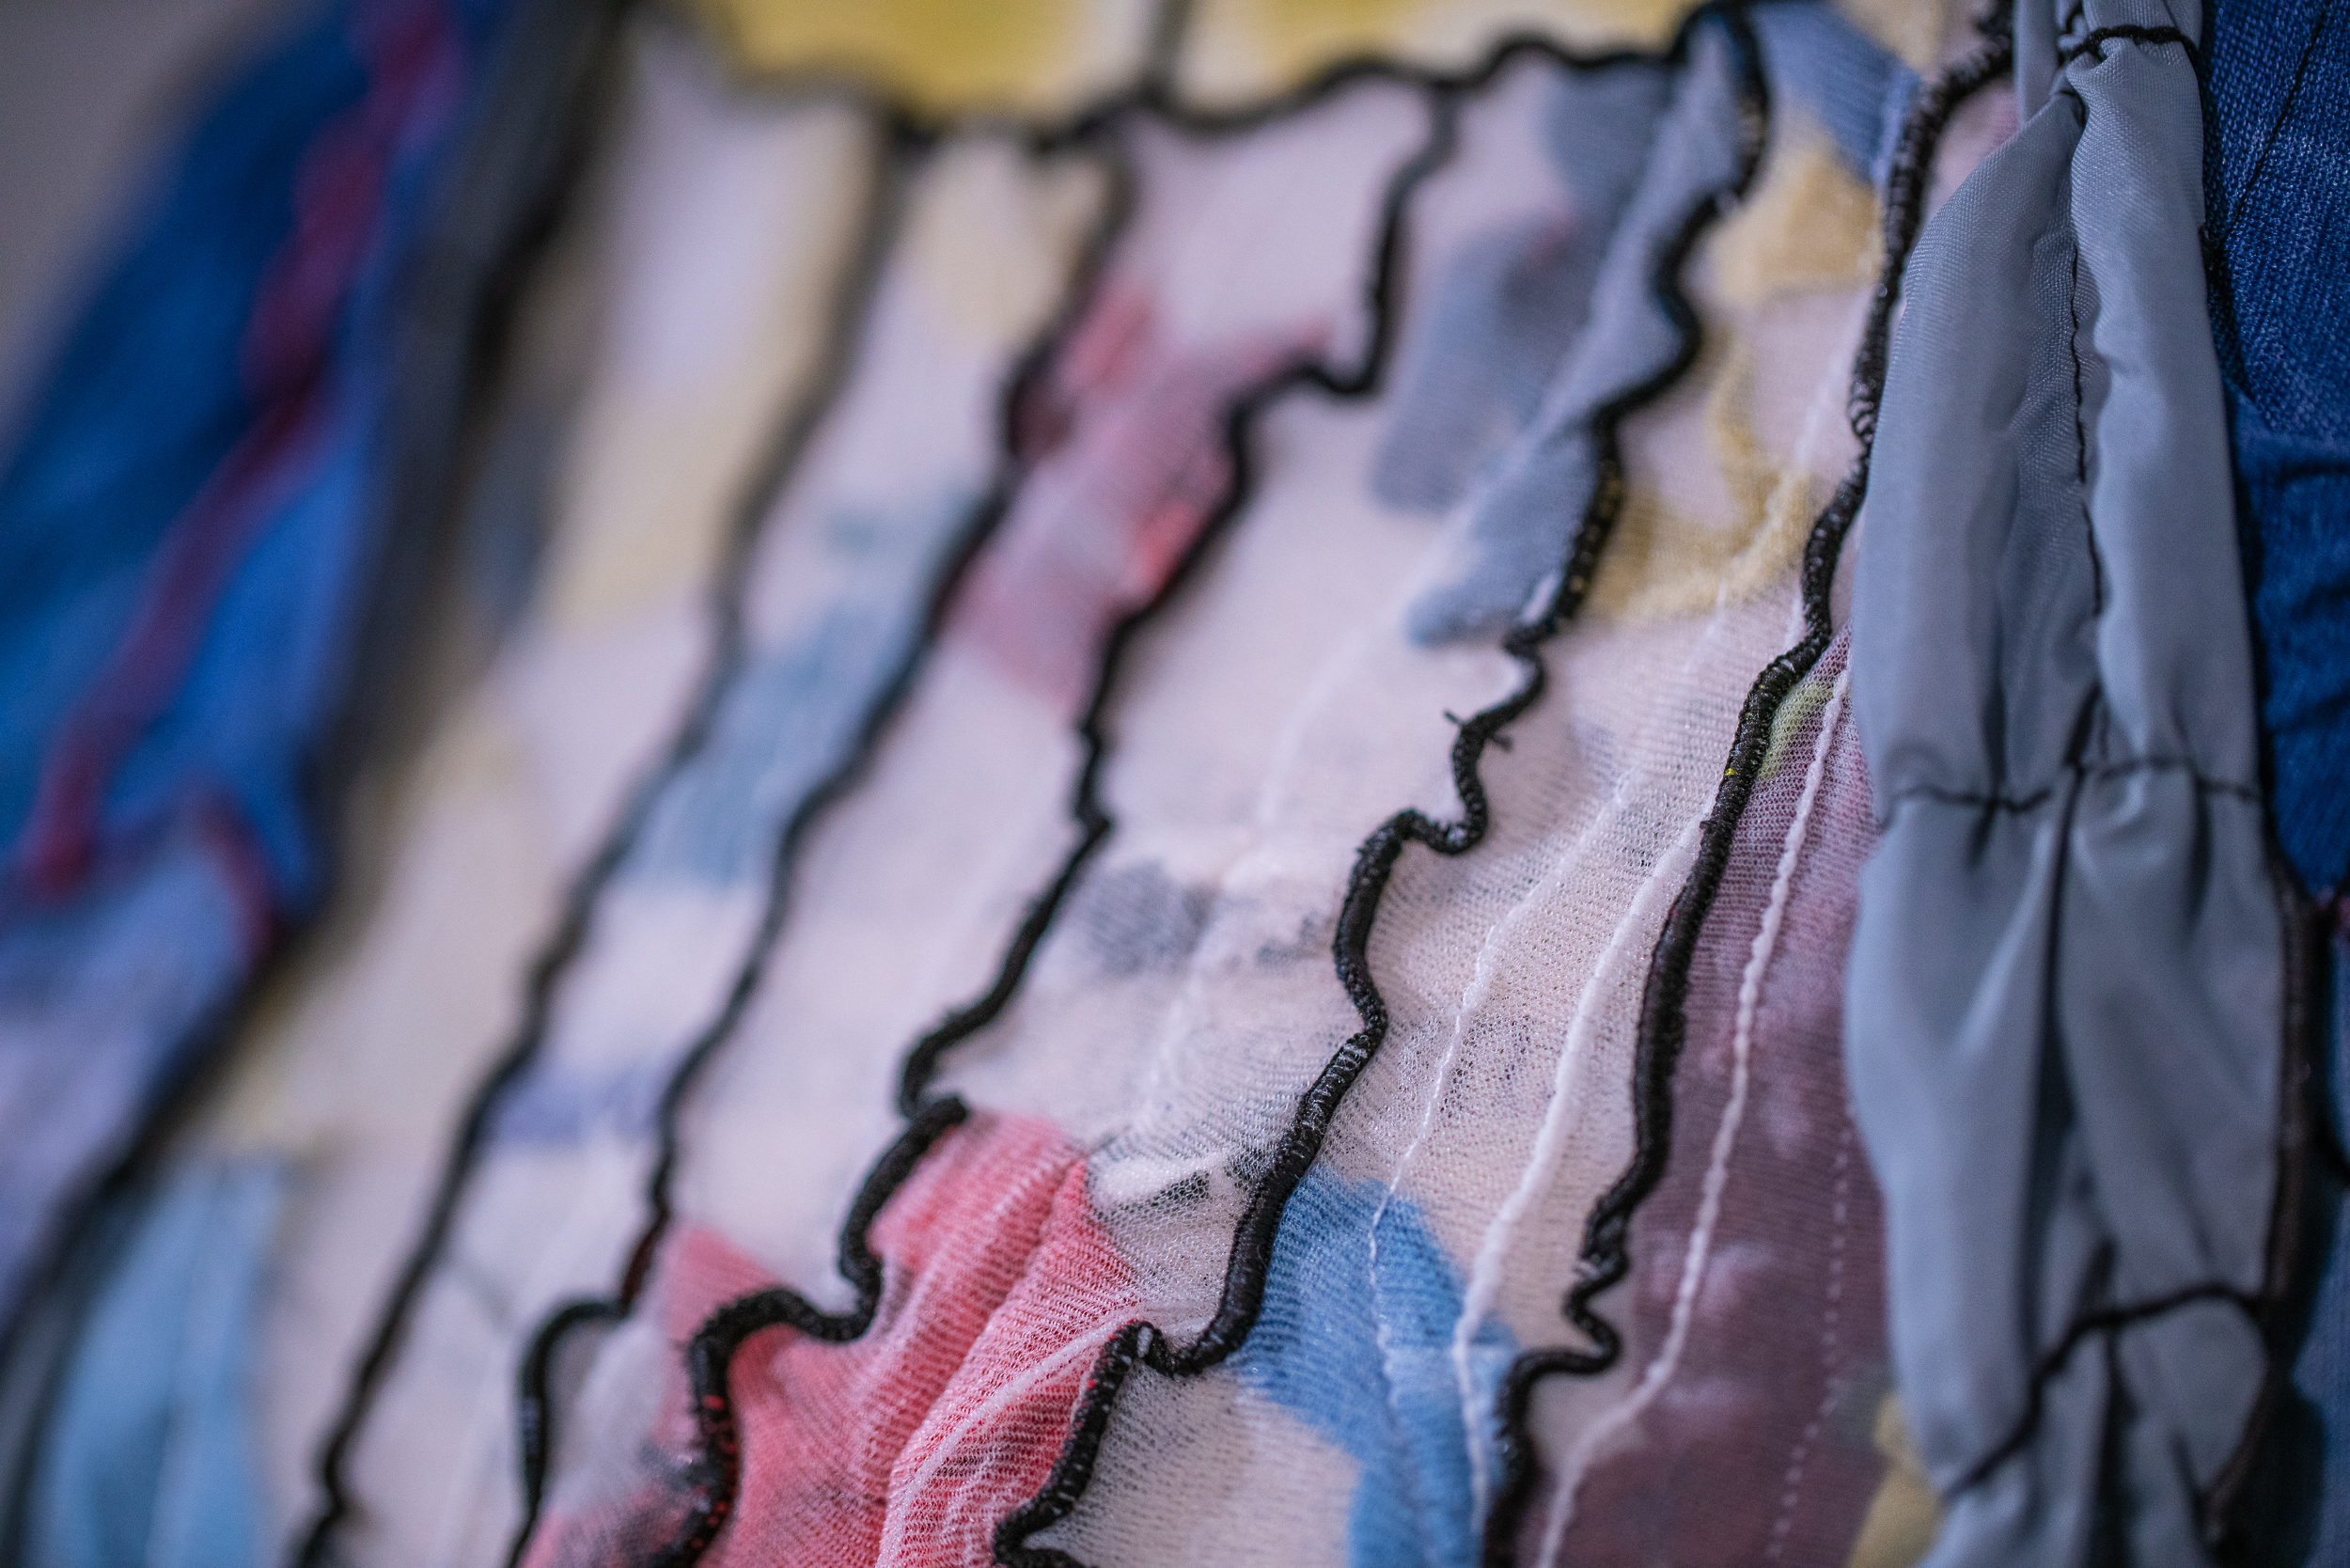 MaterialRevolution_KrisKish-6.jpg